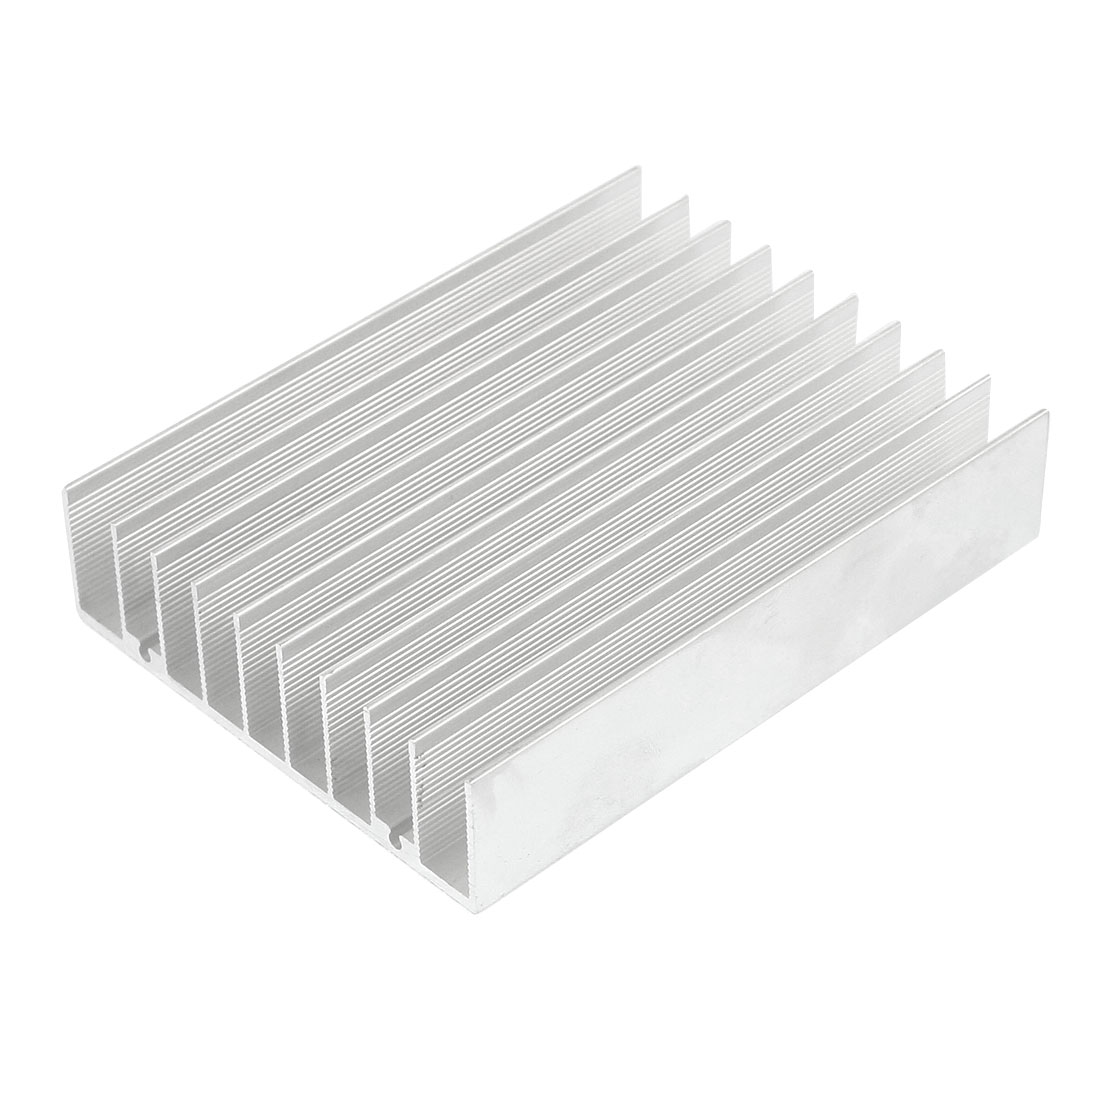 Silver White 100mmx75mmx21mm LED Heat Sink Aluminum Cooling Fin